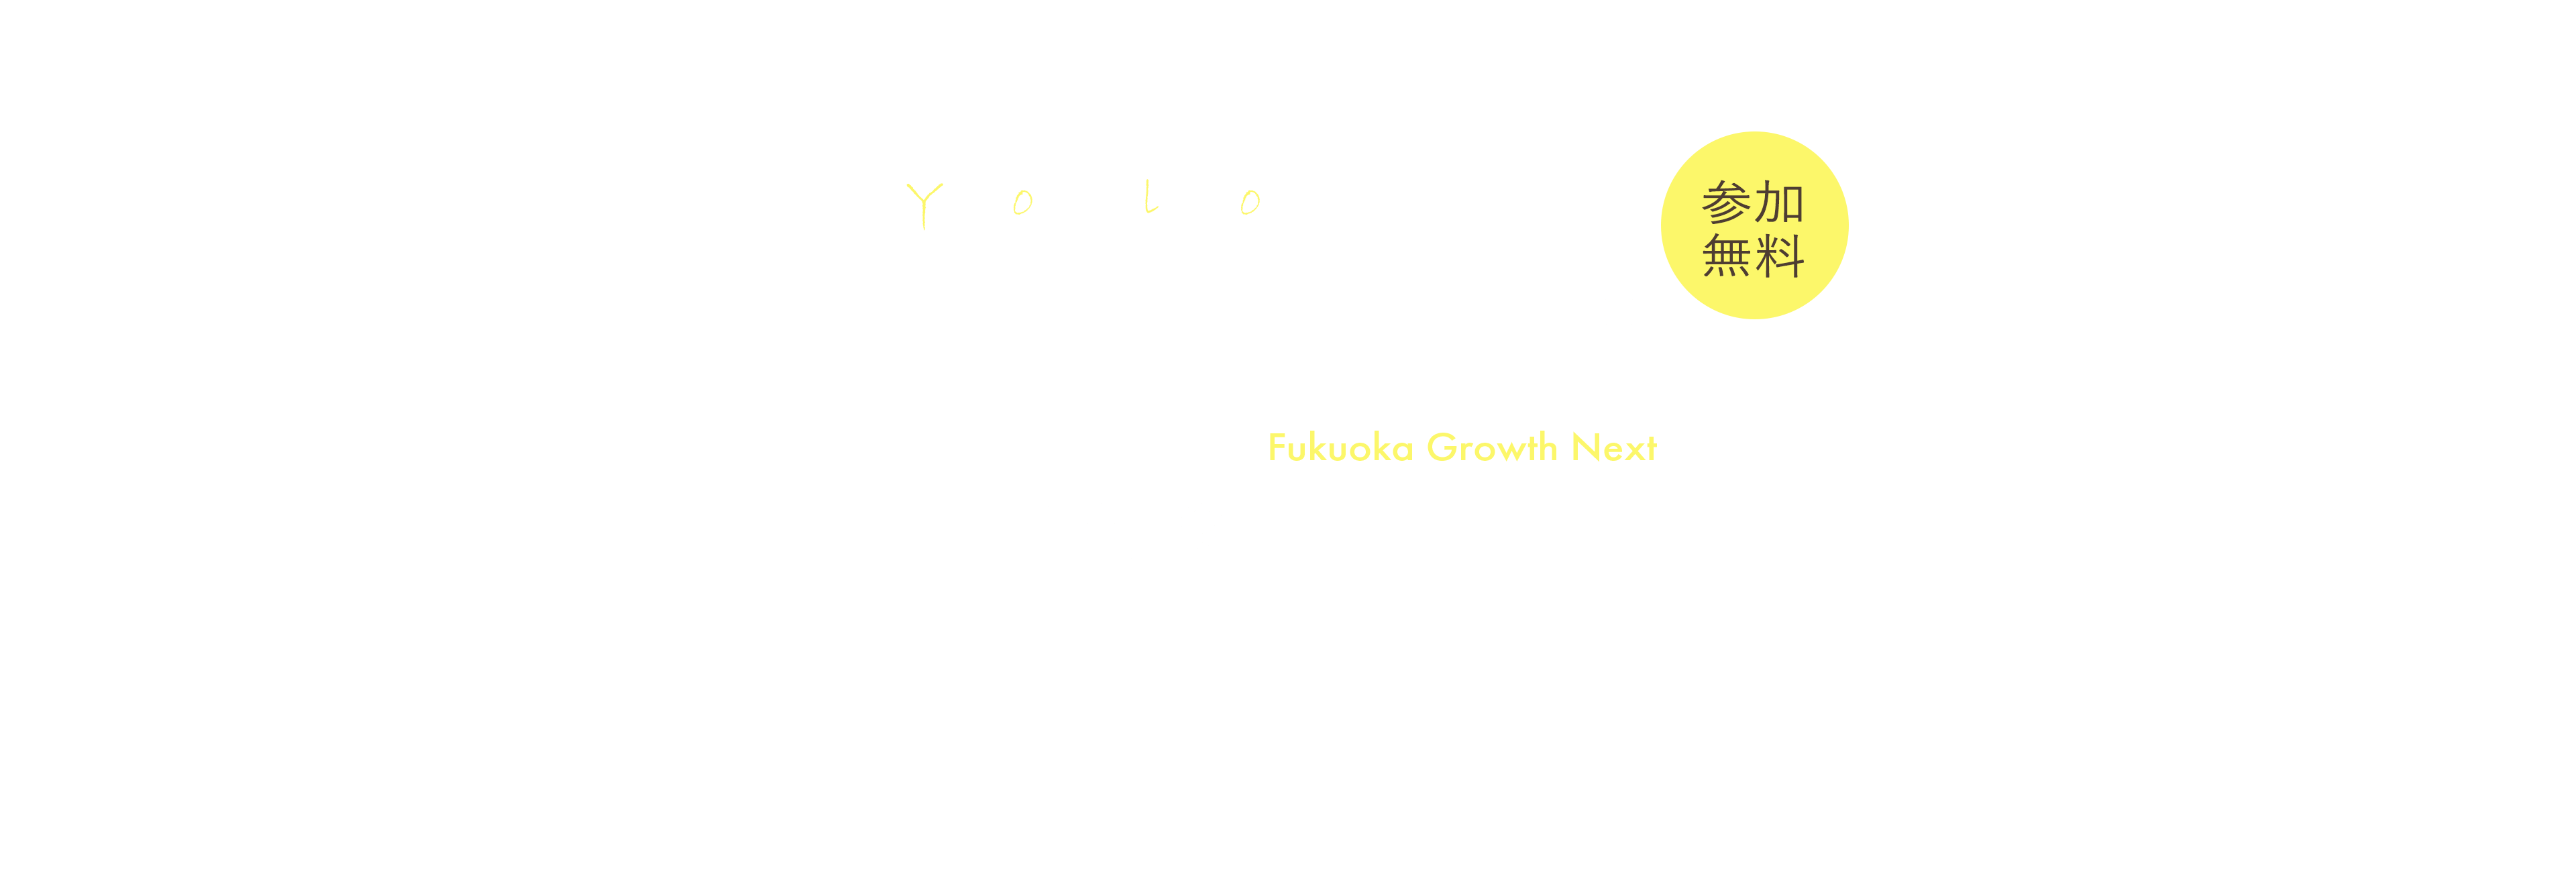 YOLO Conference vol.01 in Fukuoka Growth Next 2019.10.19(Sat) 13:00-17:40 参加無料